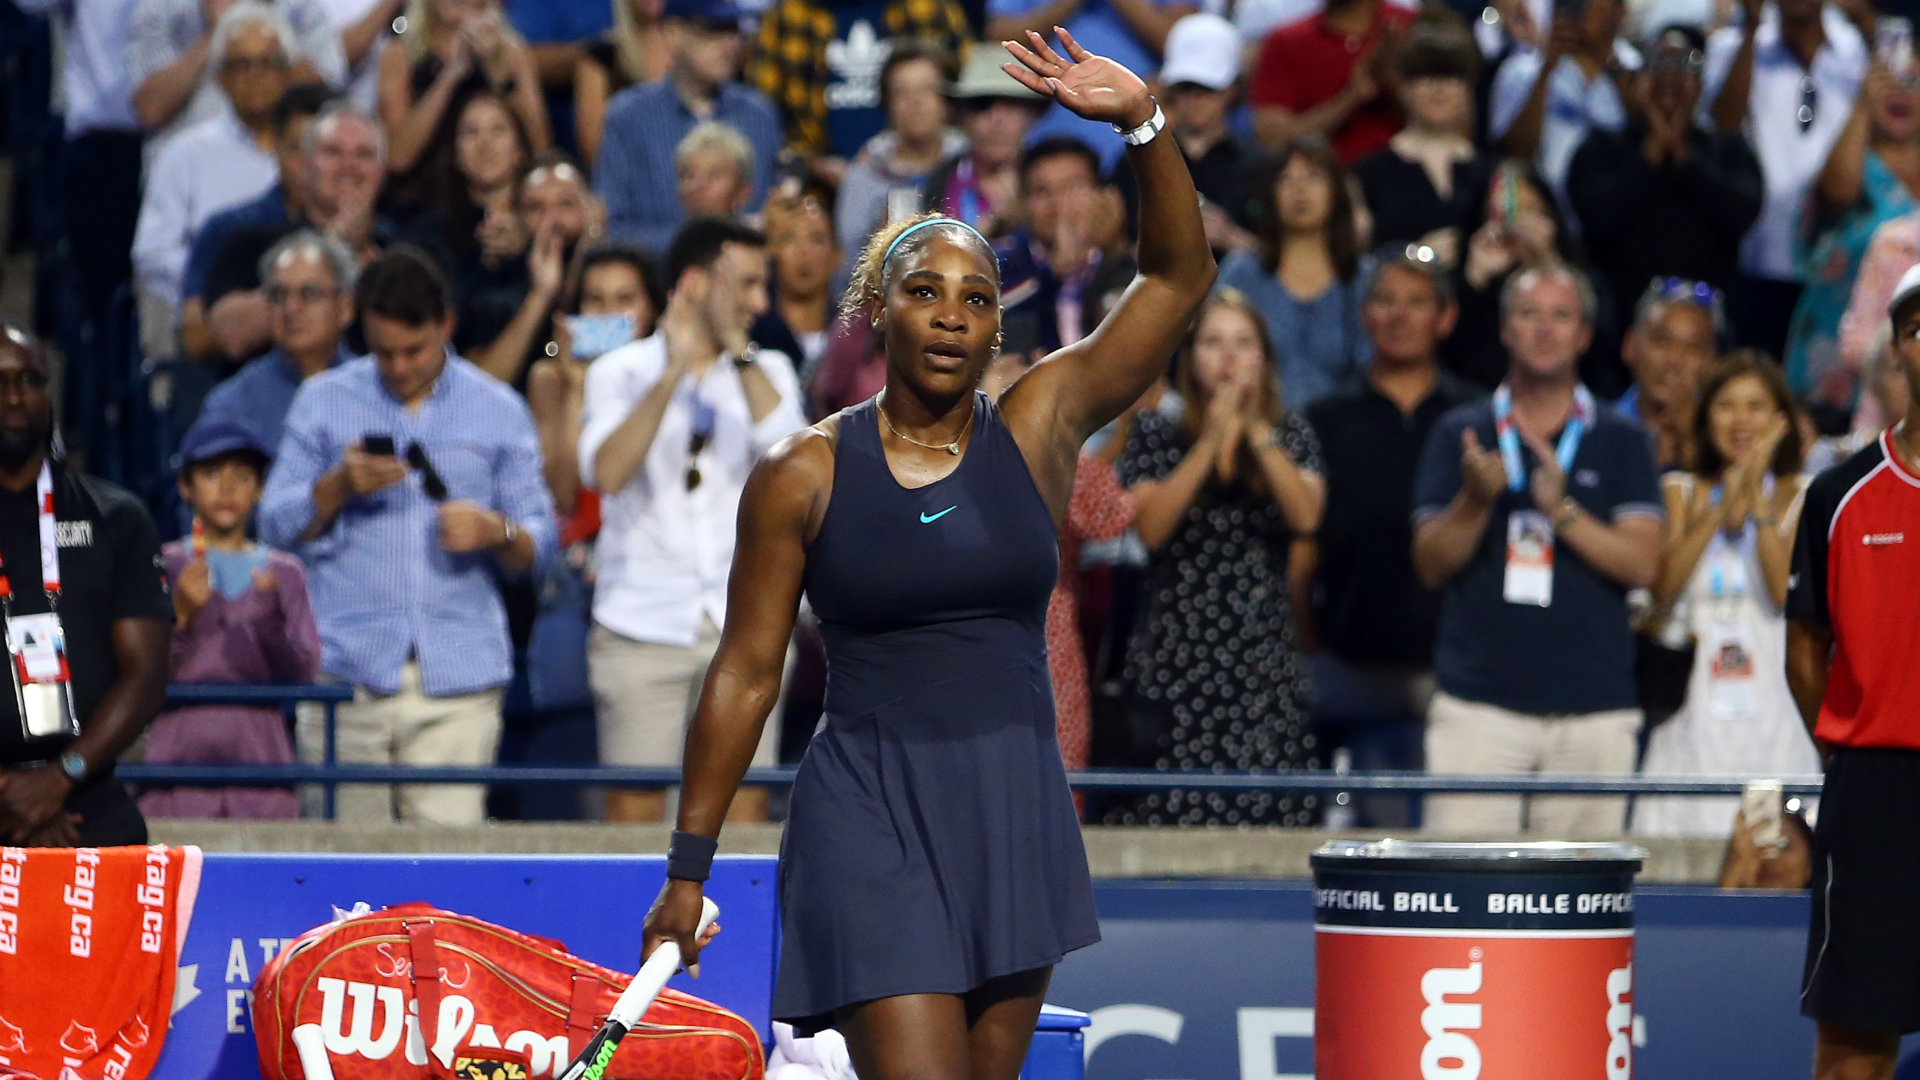 Serena Williams, Naomi Osaka to meet for first time since 2018 U.S. Open final